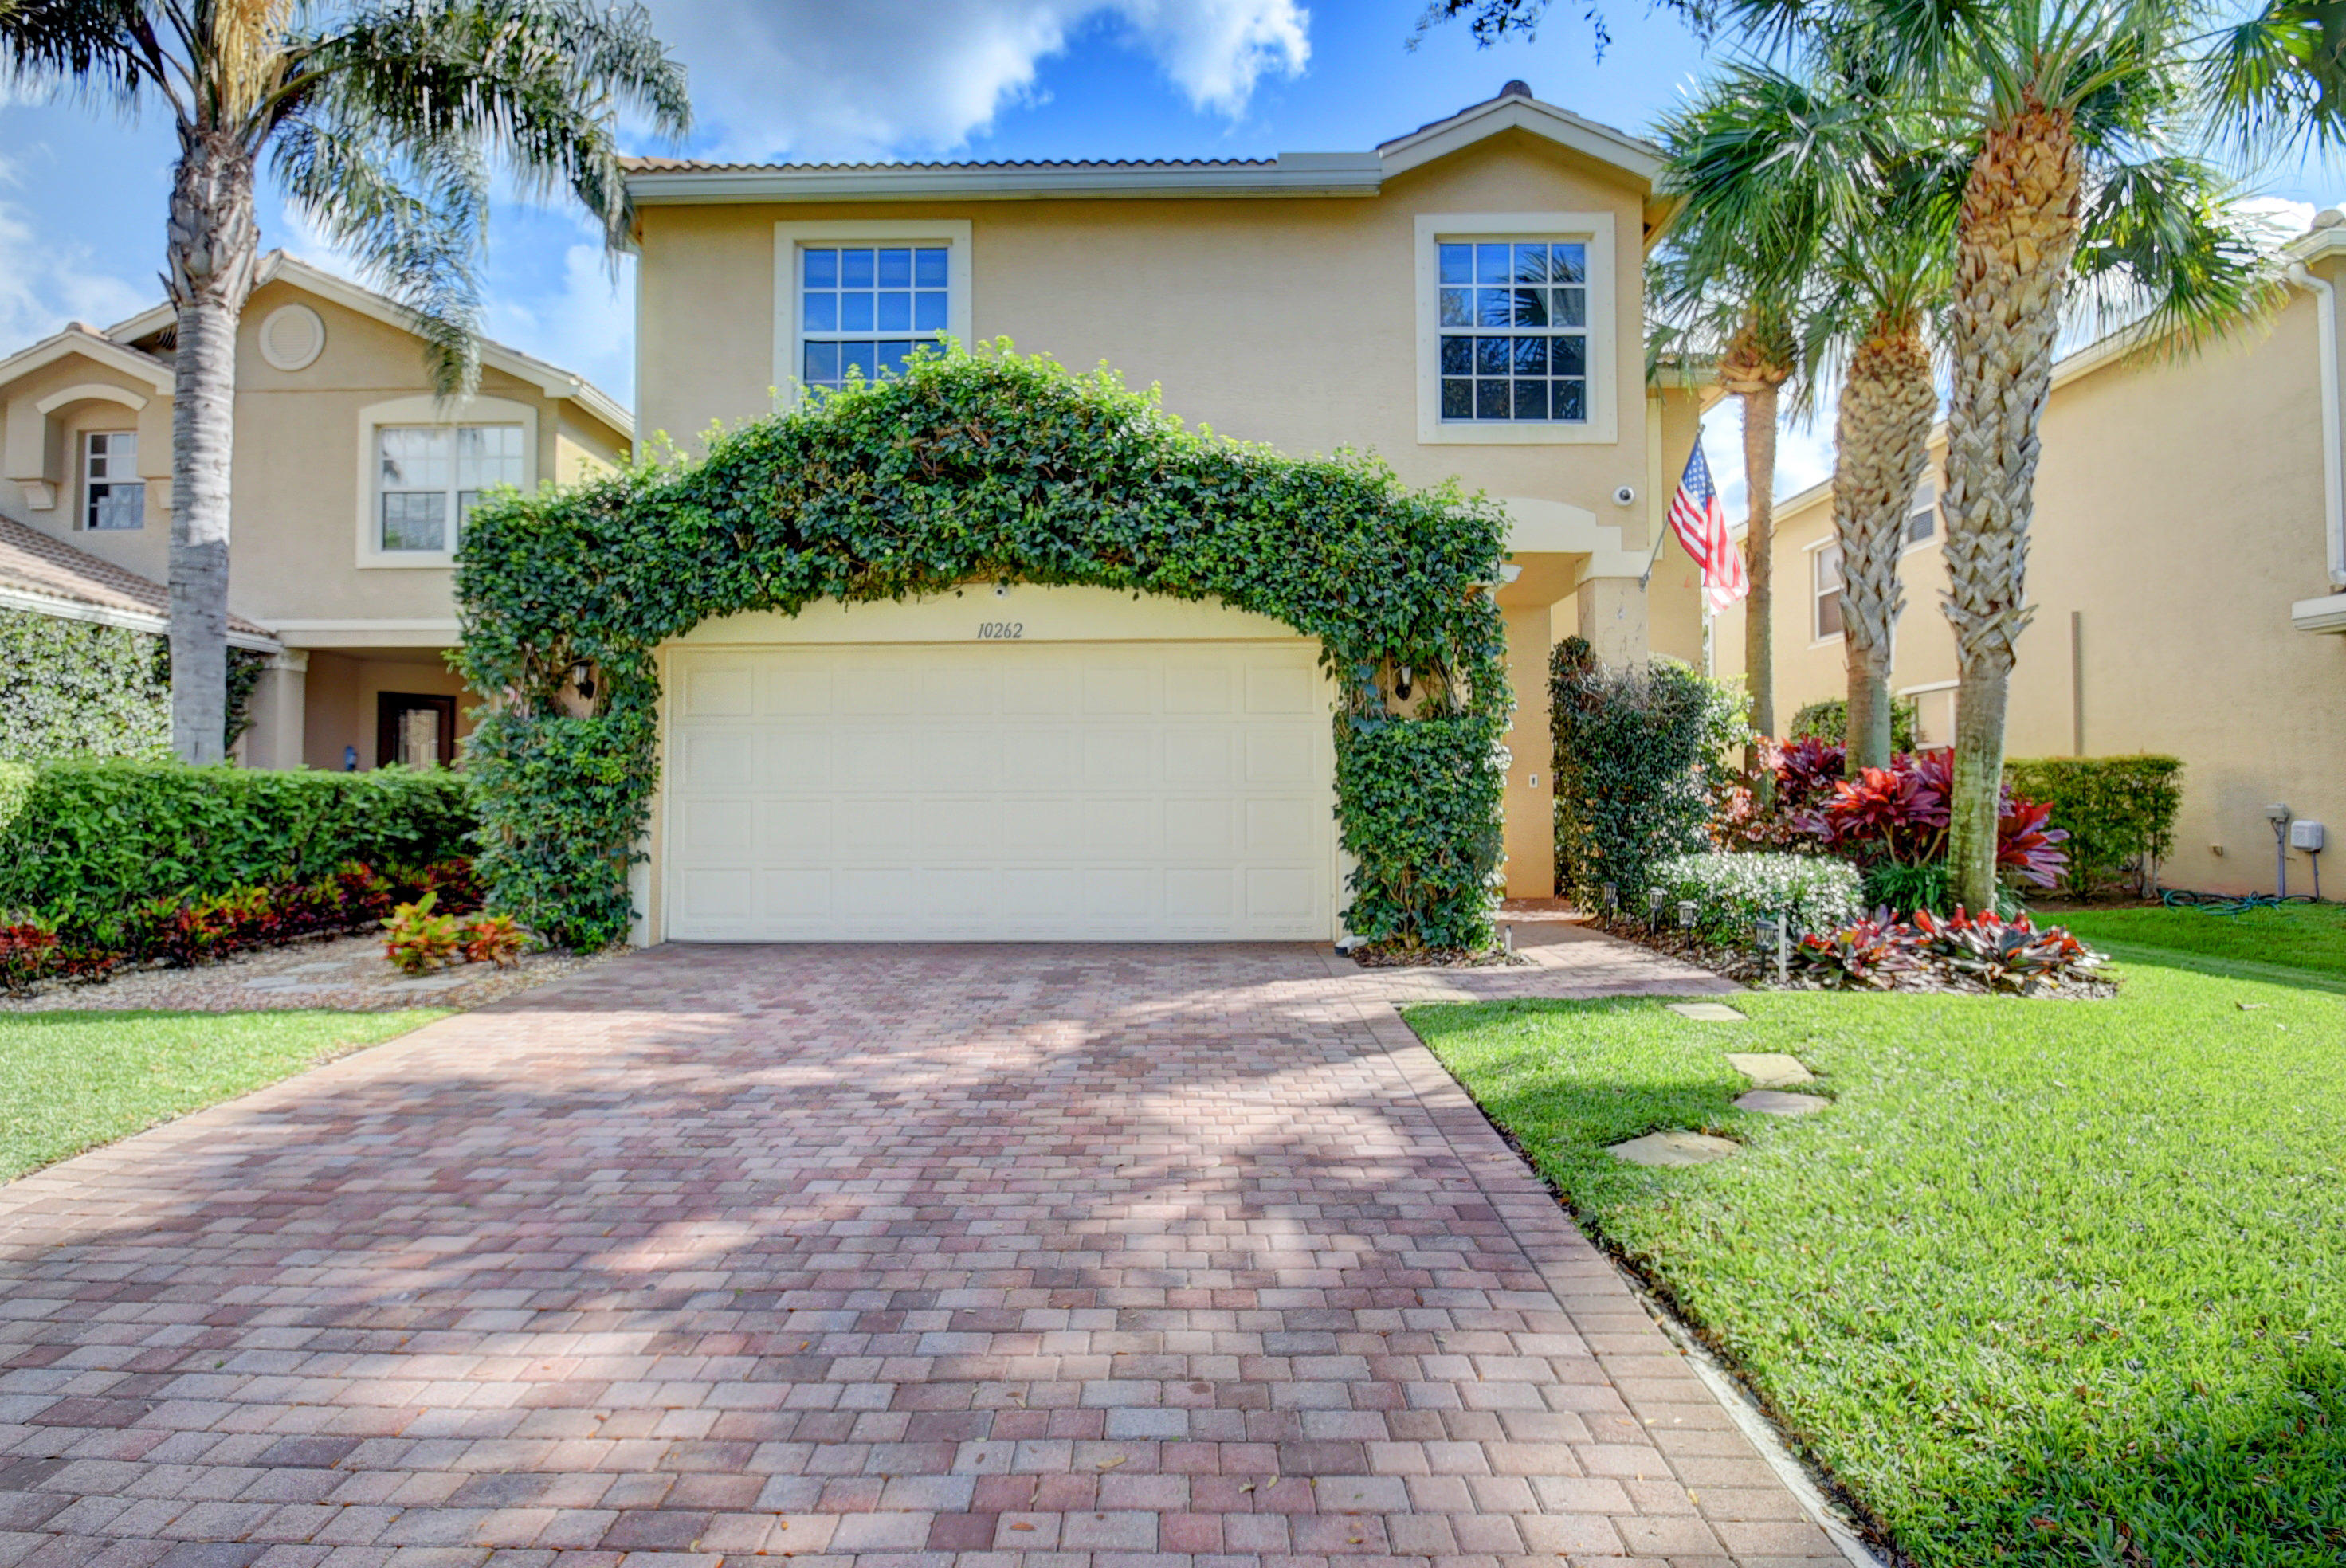 10262 White Water Lily Way, Boynton Beach, FL 33437